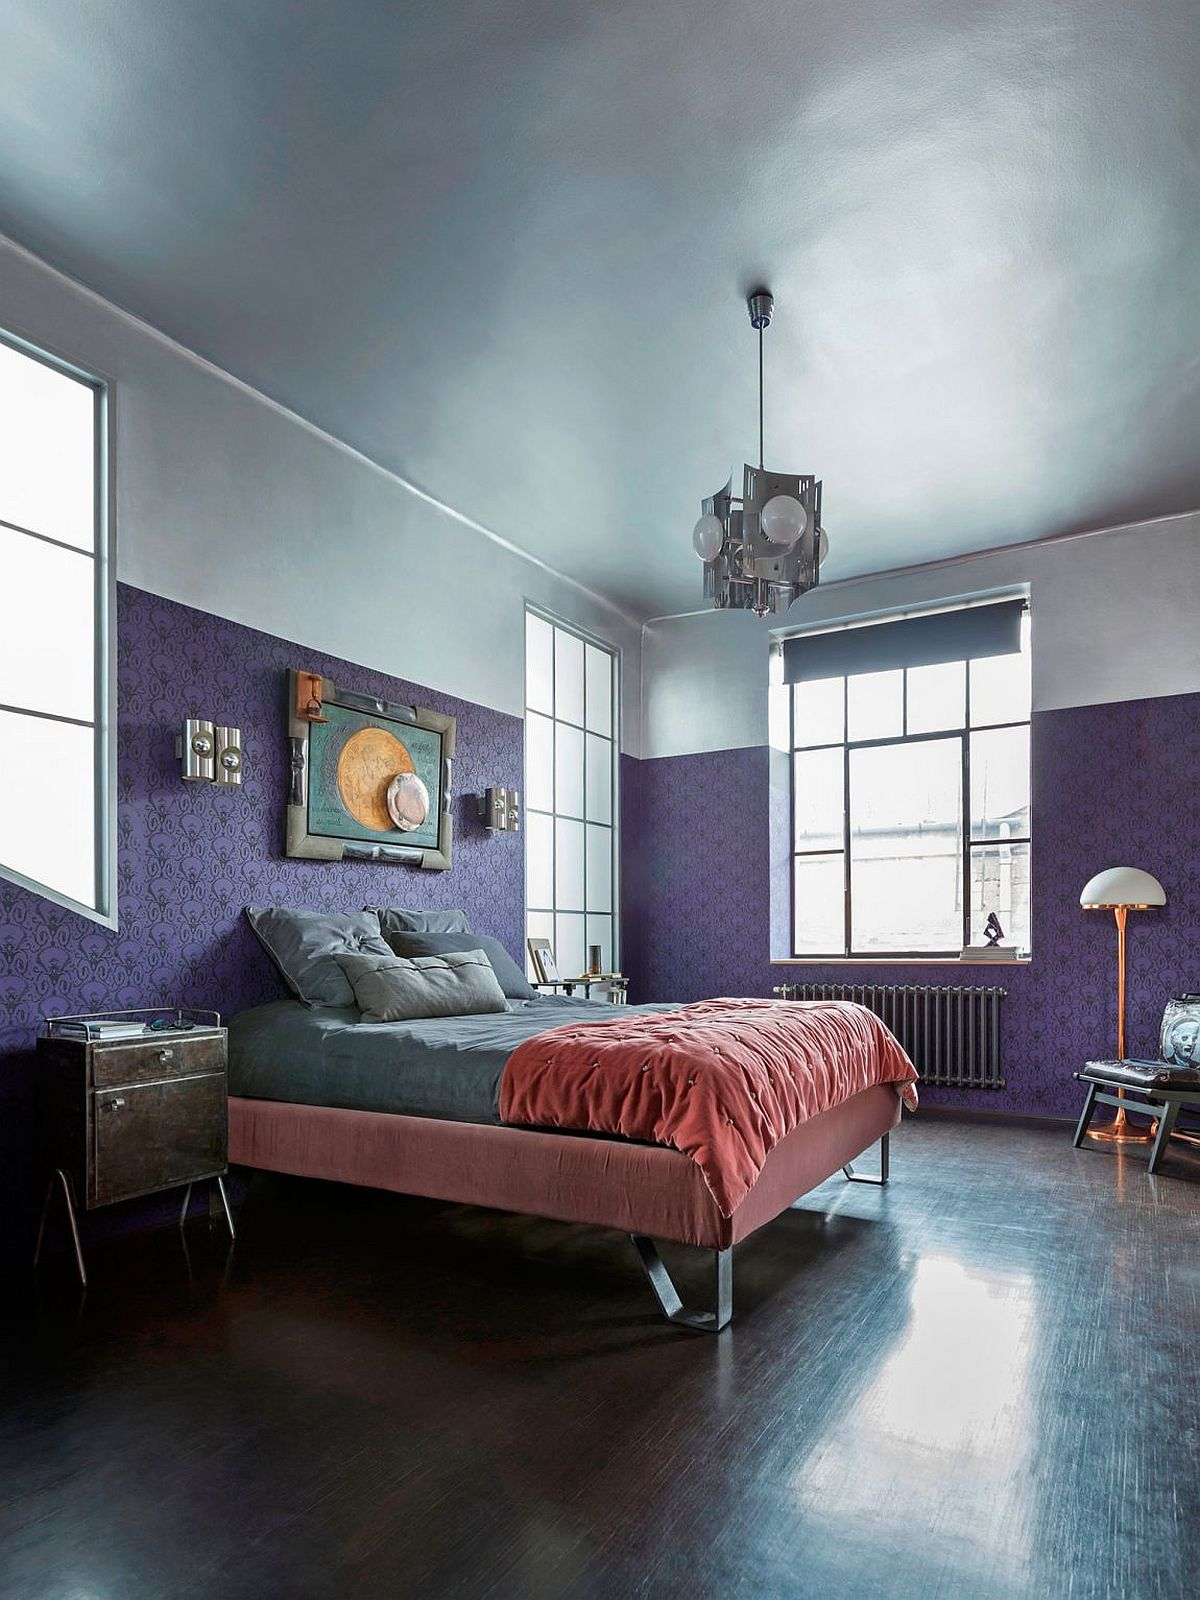 Mid century bedroom design with flair and color